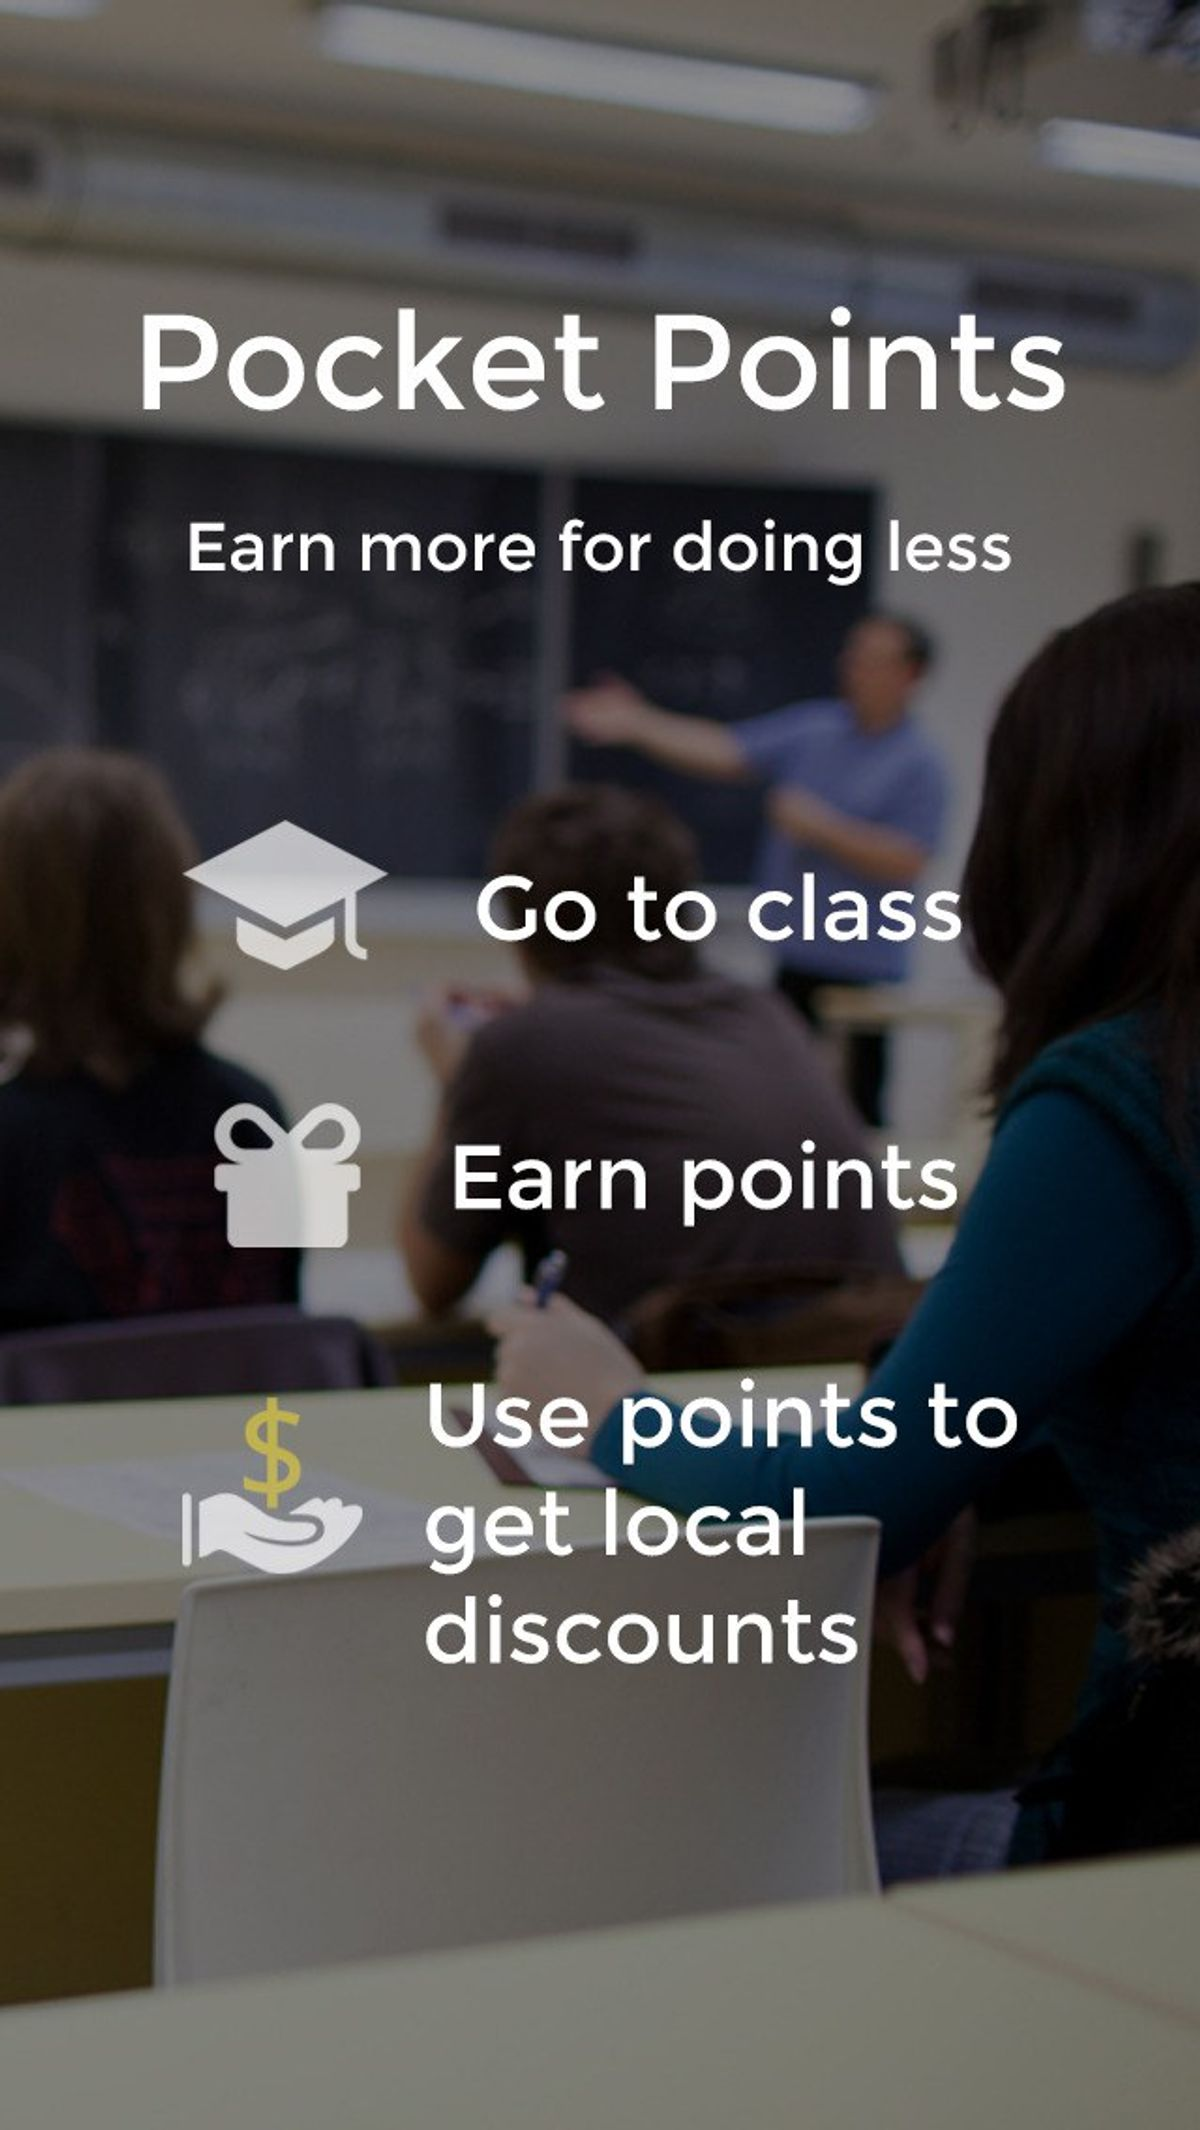 Earn Free Food and More by Going to Class